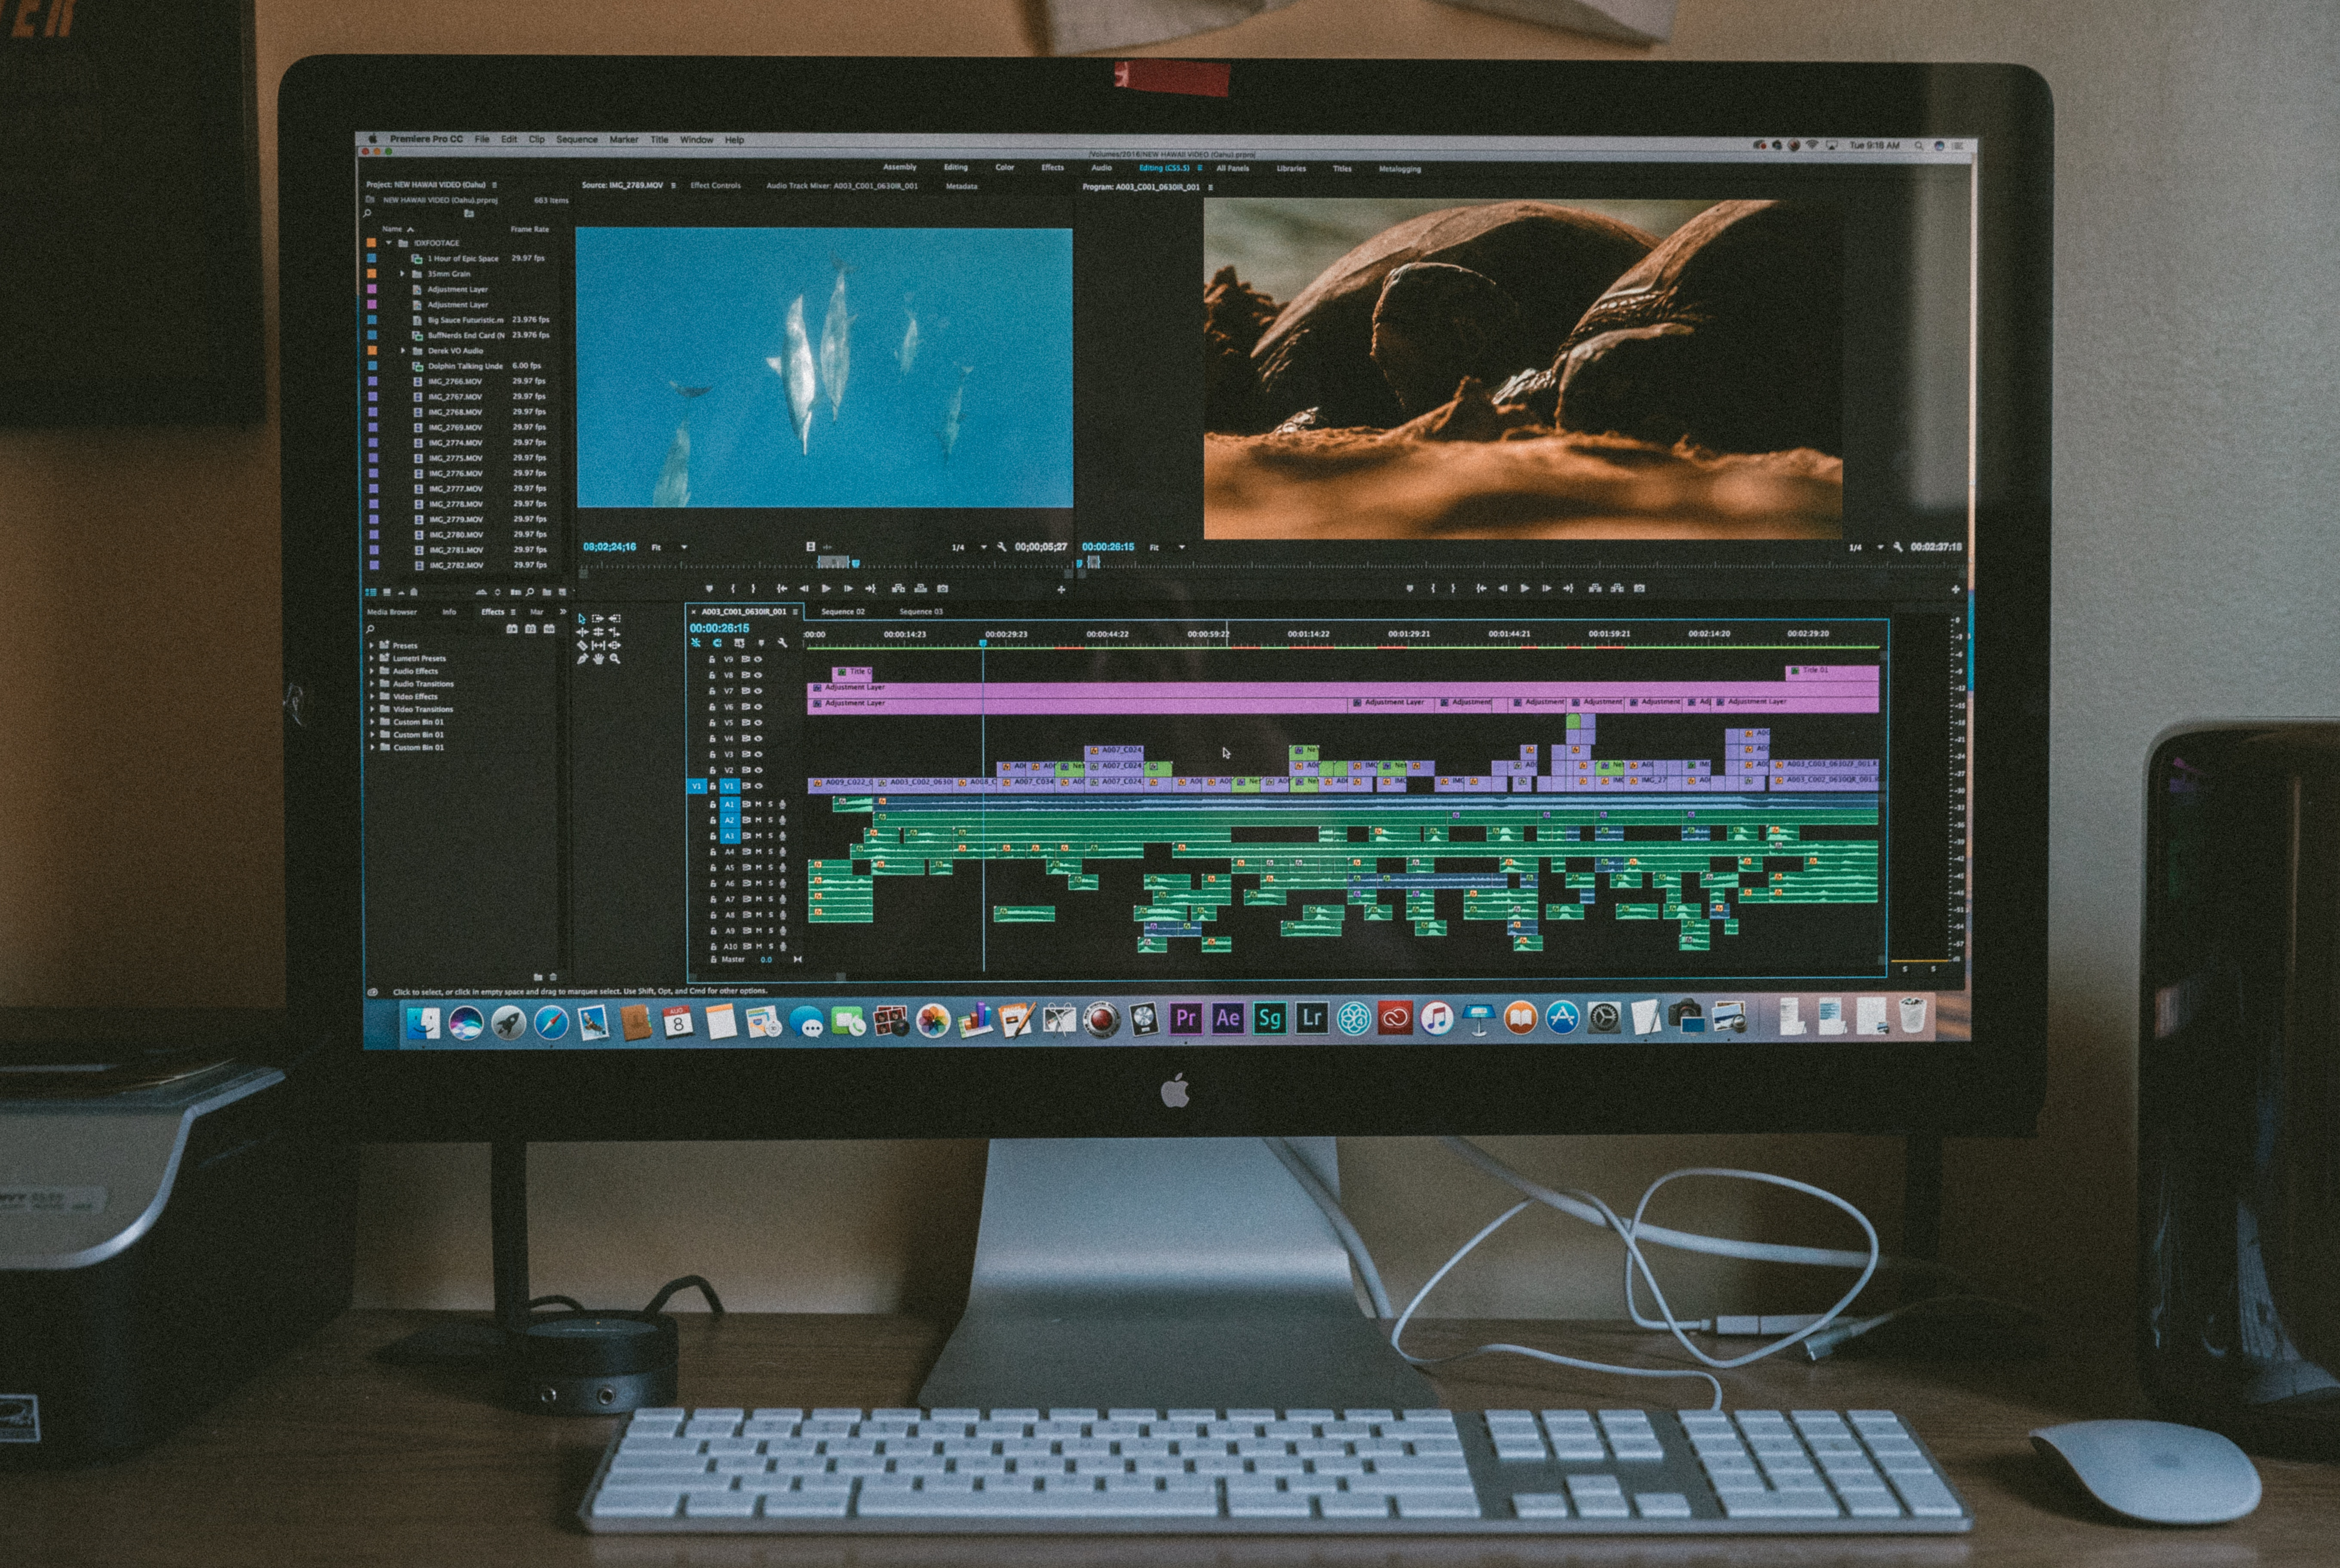 The Best Computer for Video Editing in 2020